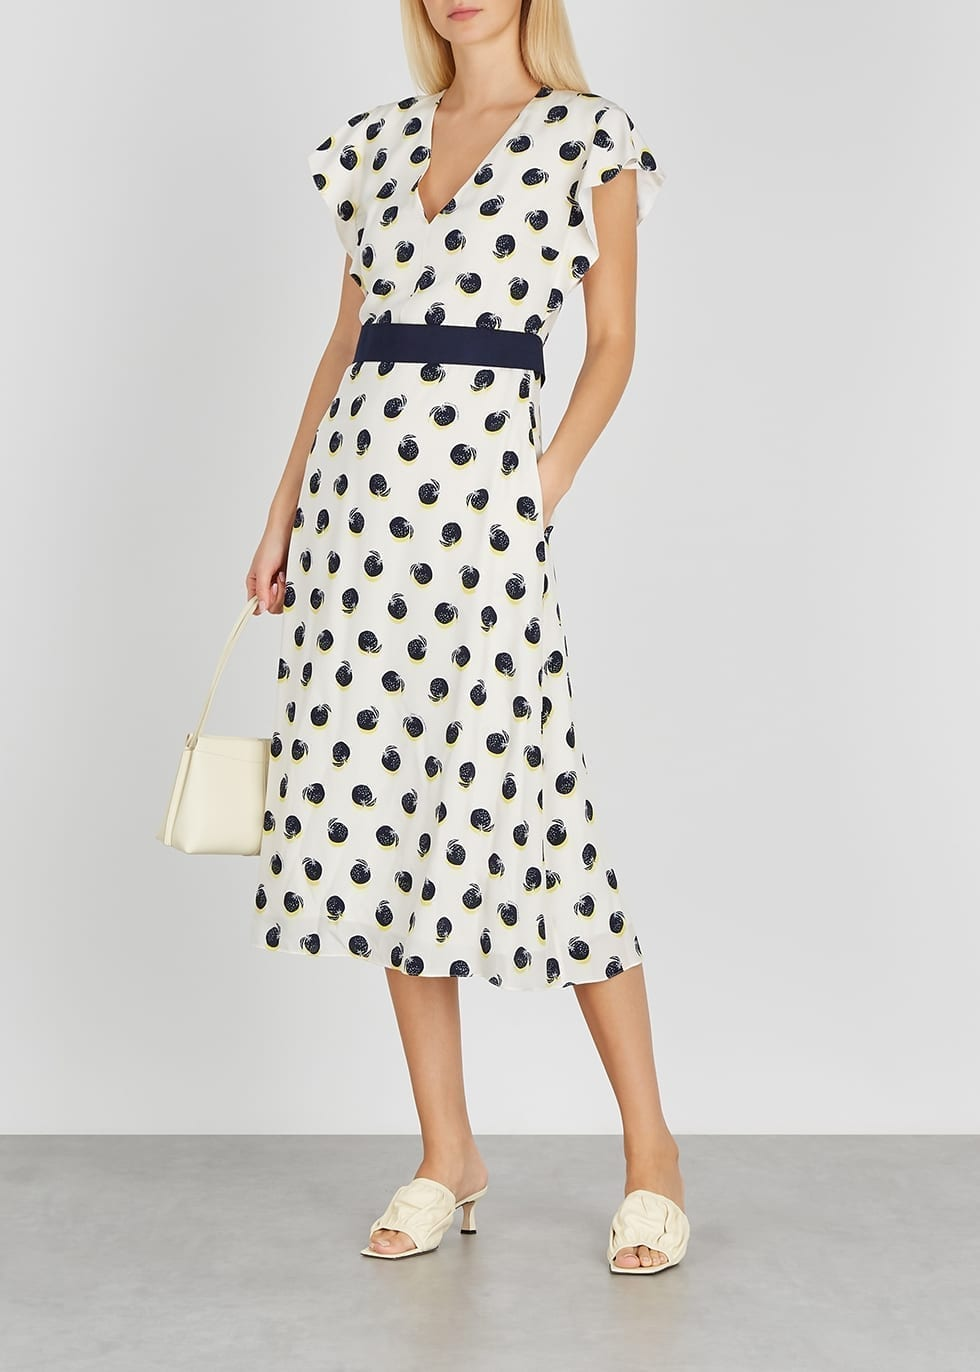 STELLA MCCARTNEY Reese Printed Silk Crepe De Chine Midi Dress